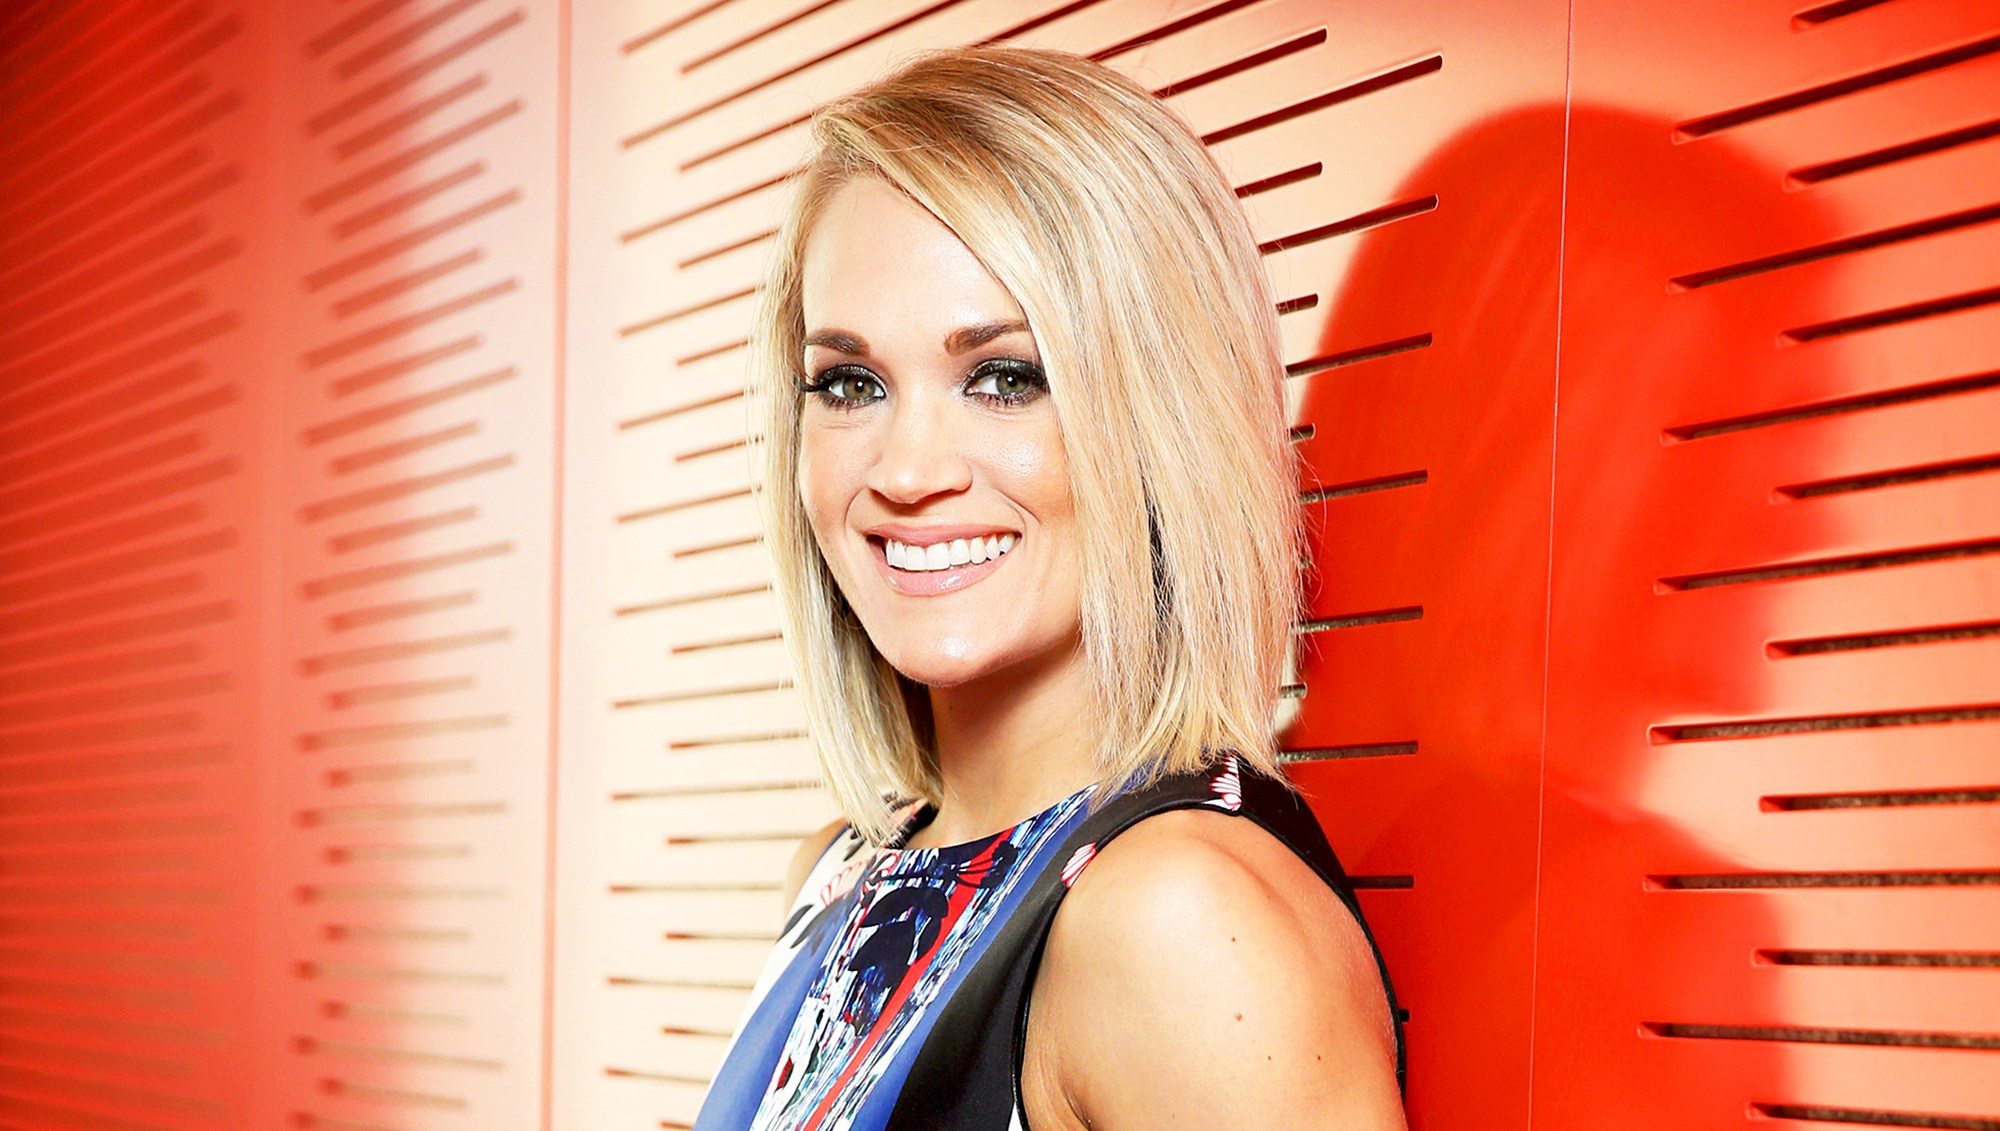 Carrie Underwood poses during a photo shoot in Sydney, New South Wales.